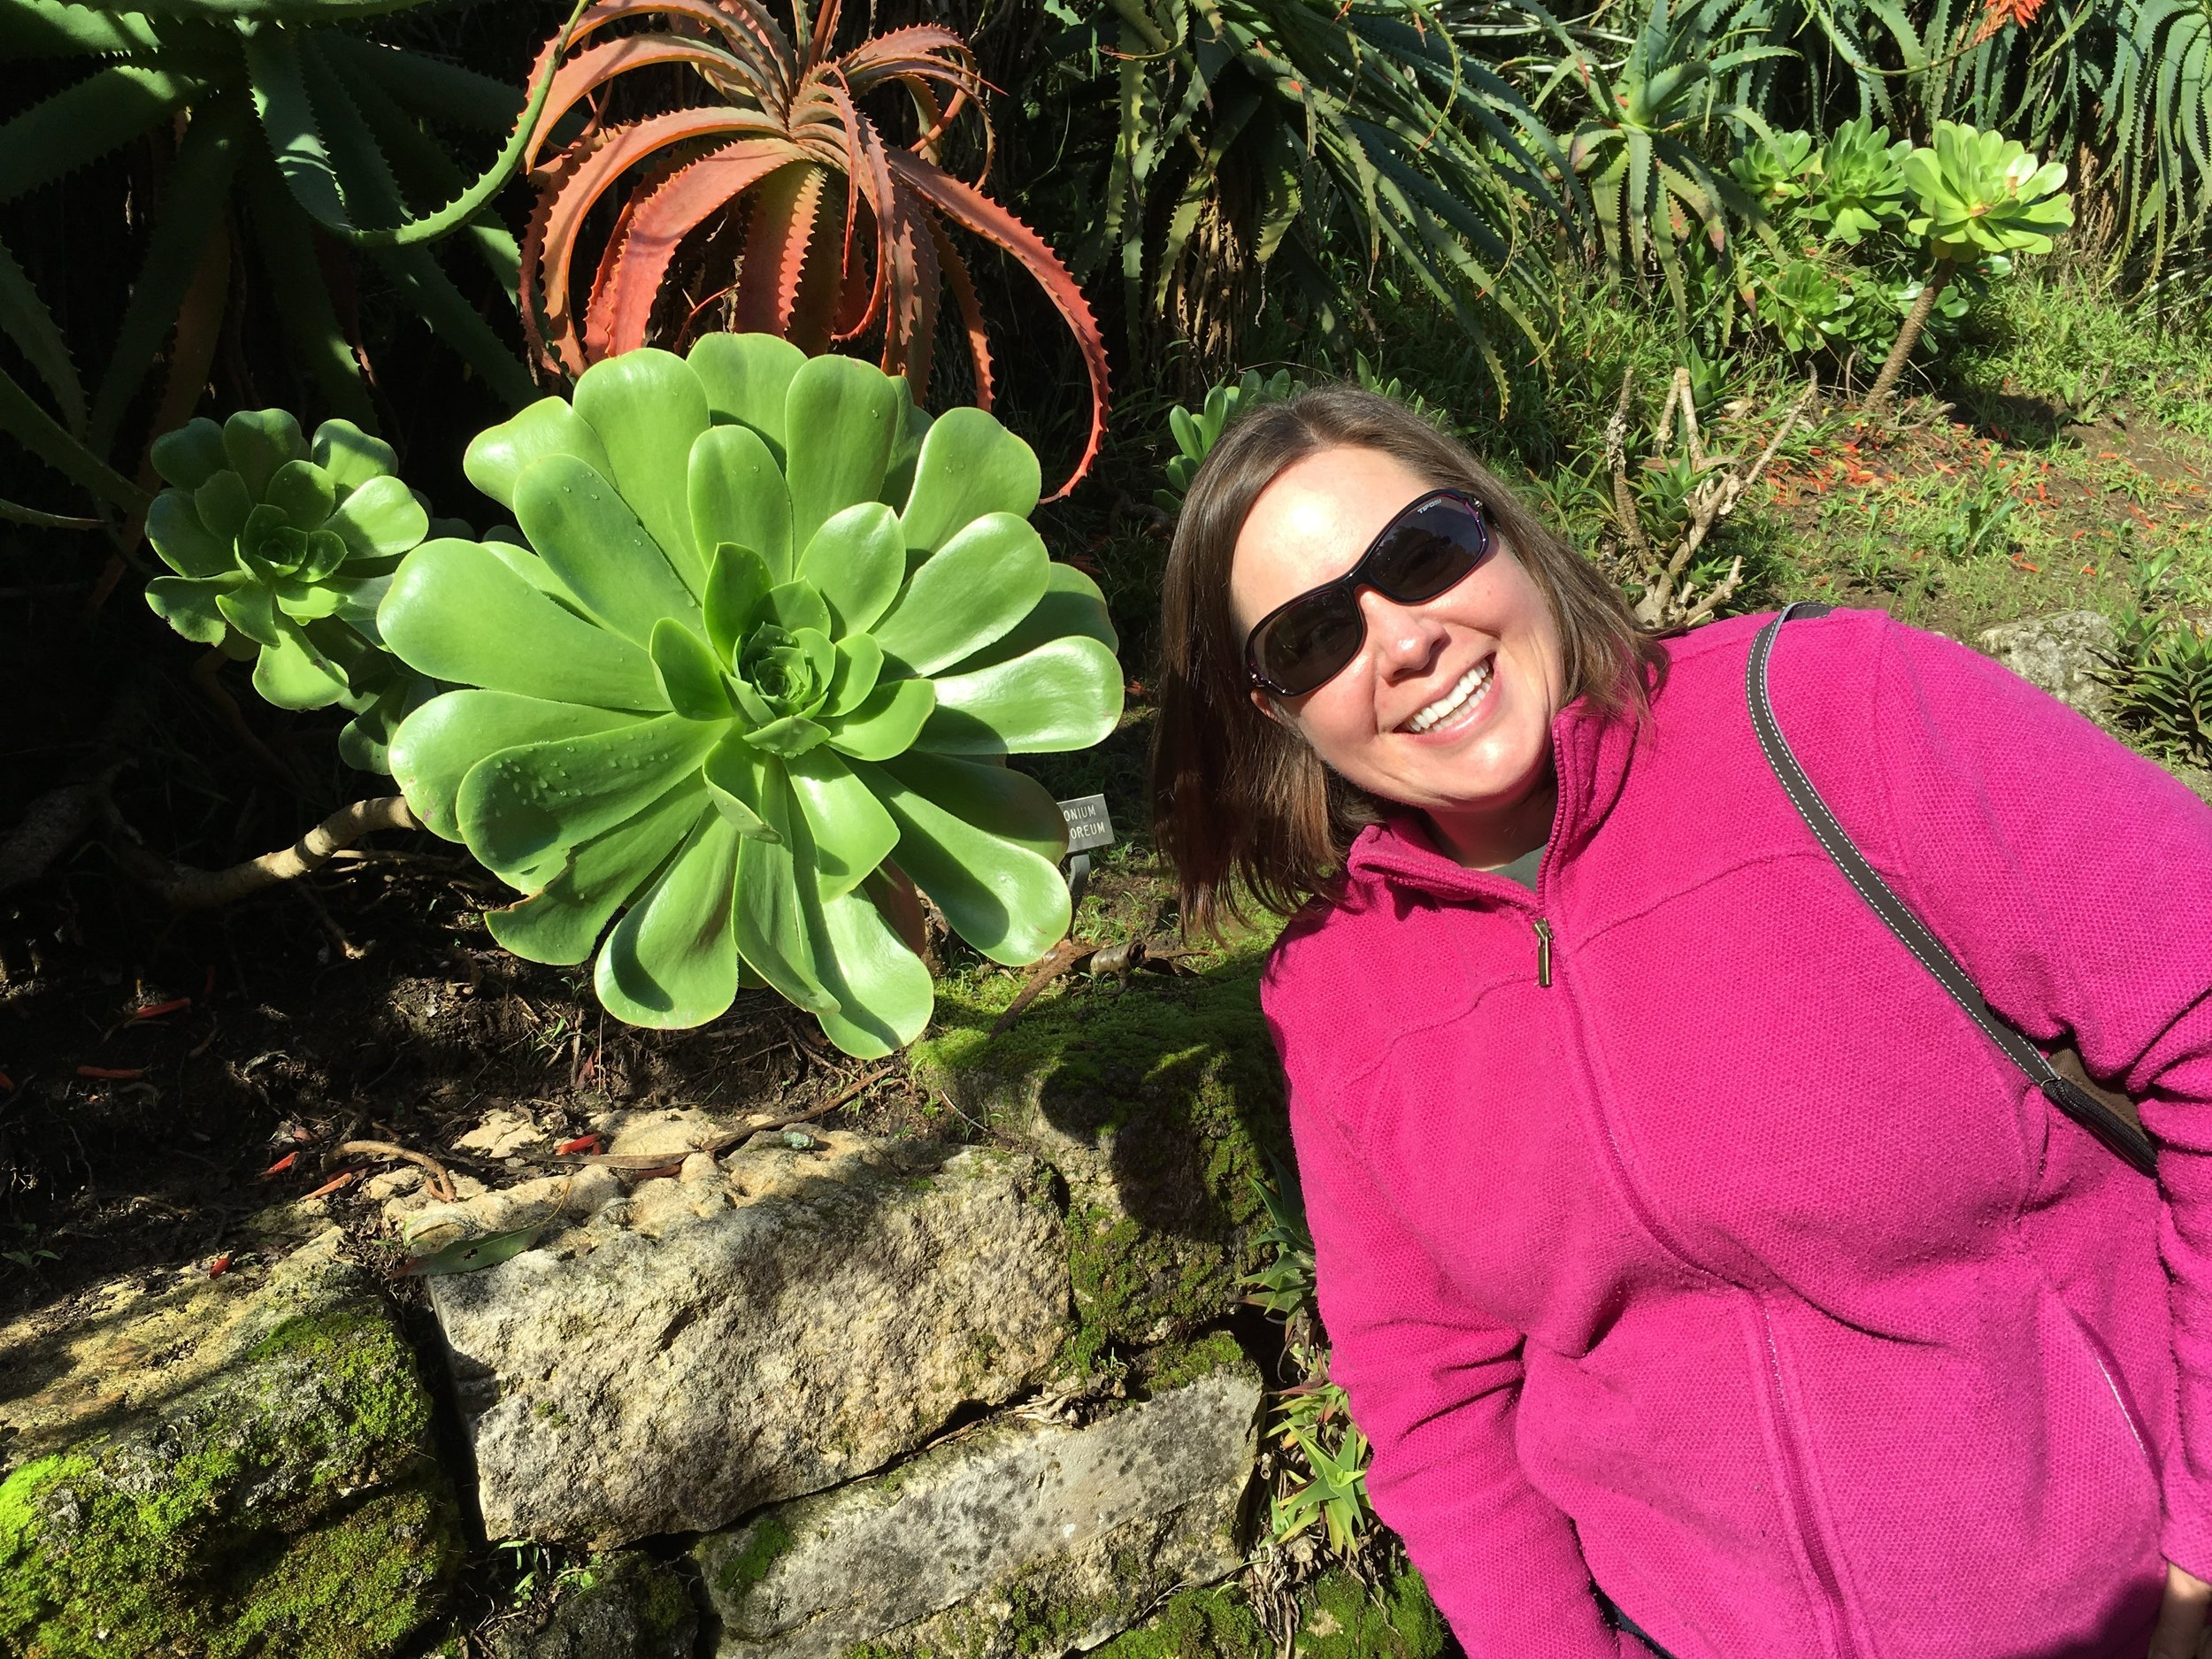 Sarah and succulents: San Francisco Botanical Gardens